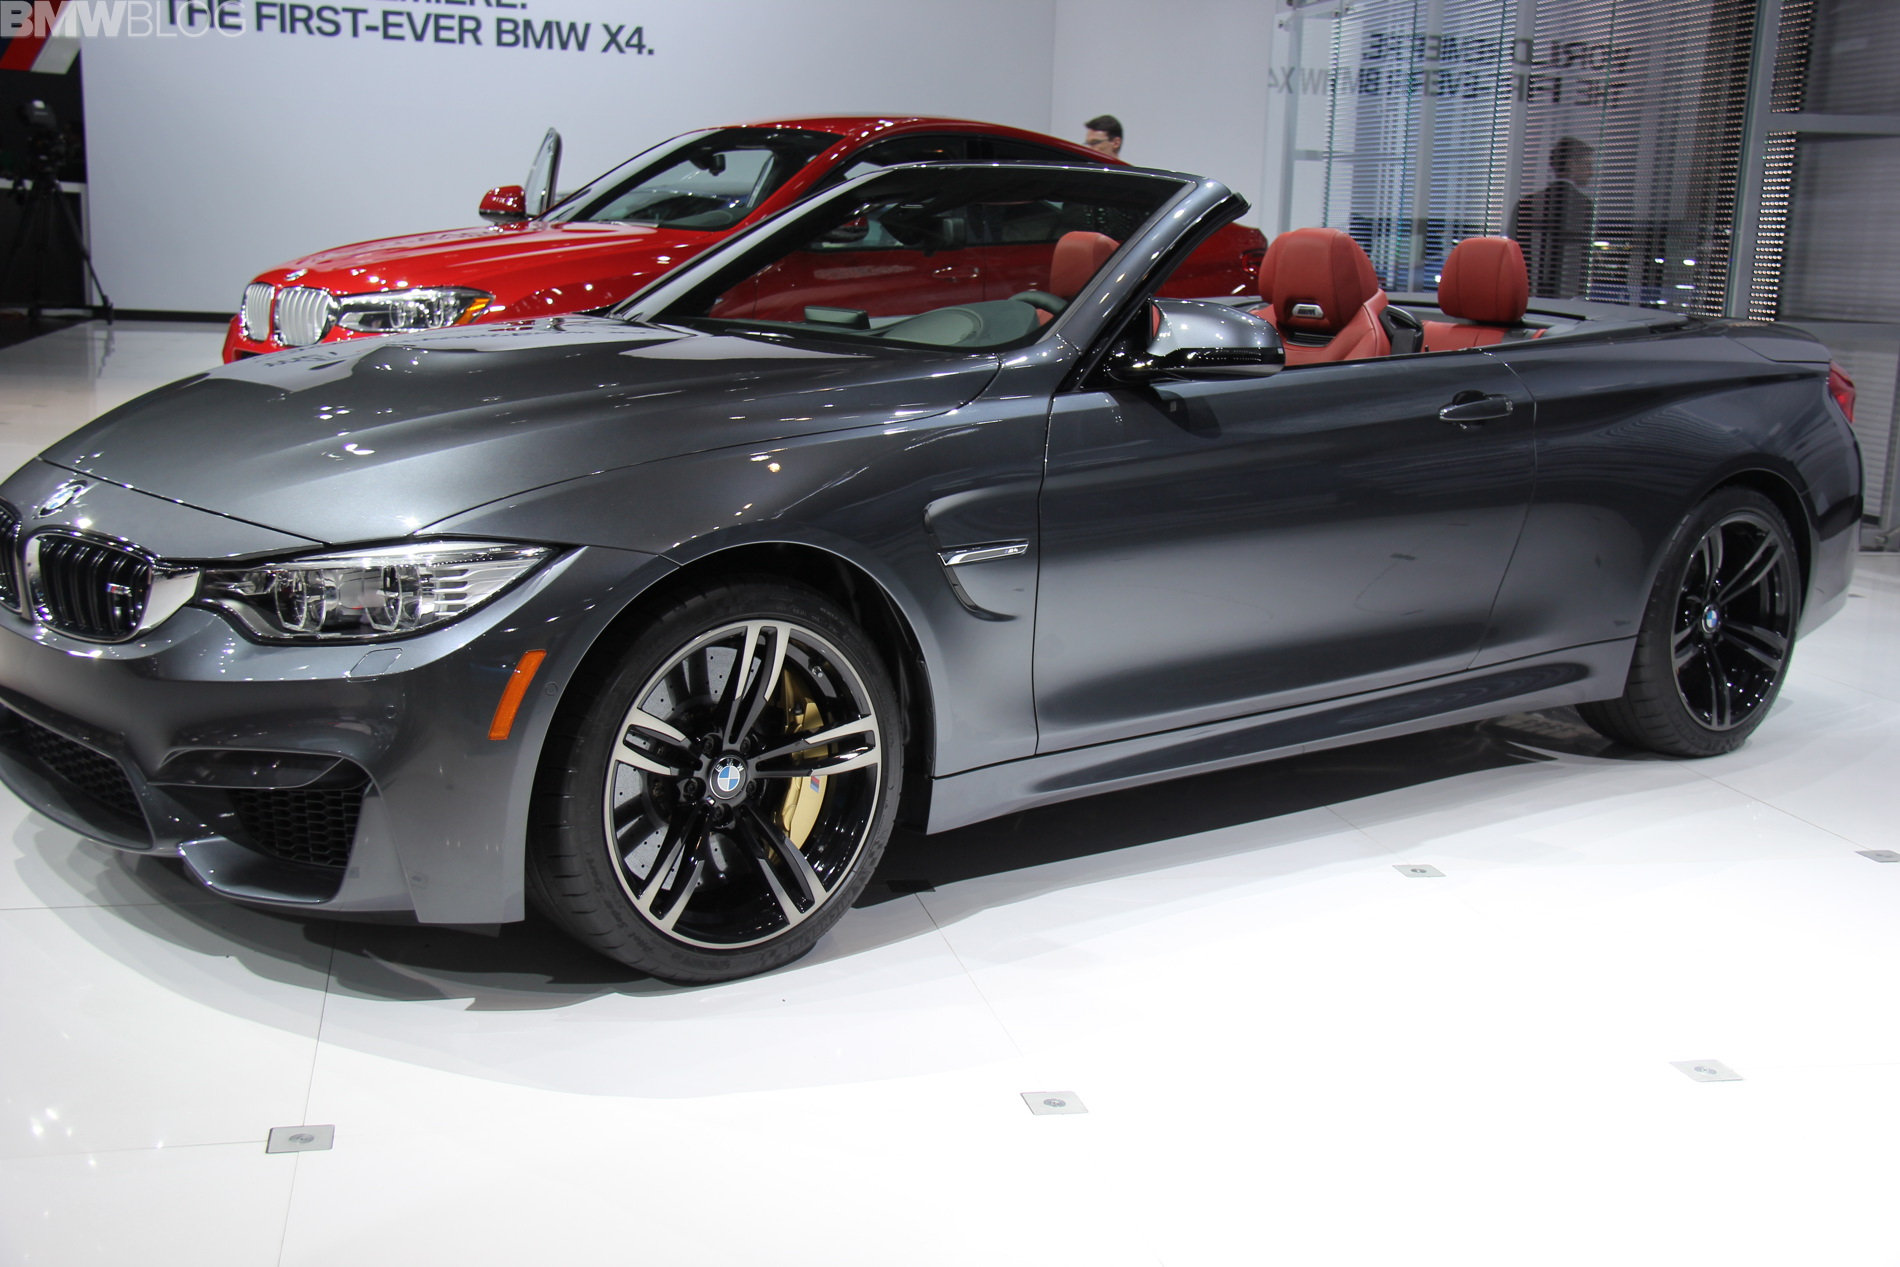 2015 BMW M4 Convertible Video from 2014 New York Auto Show